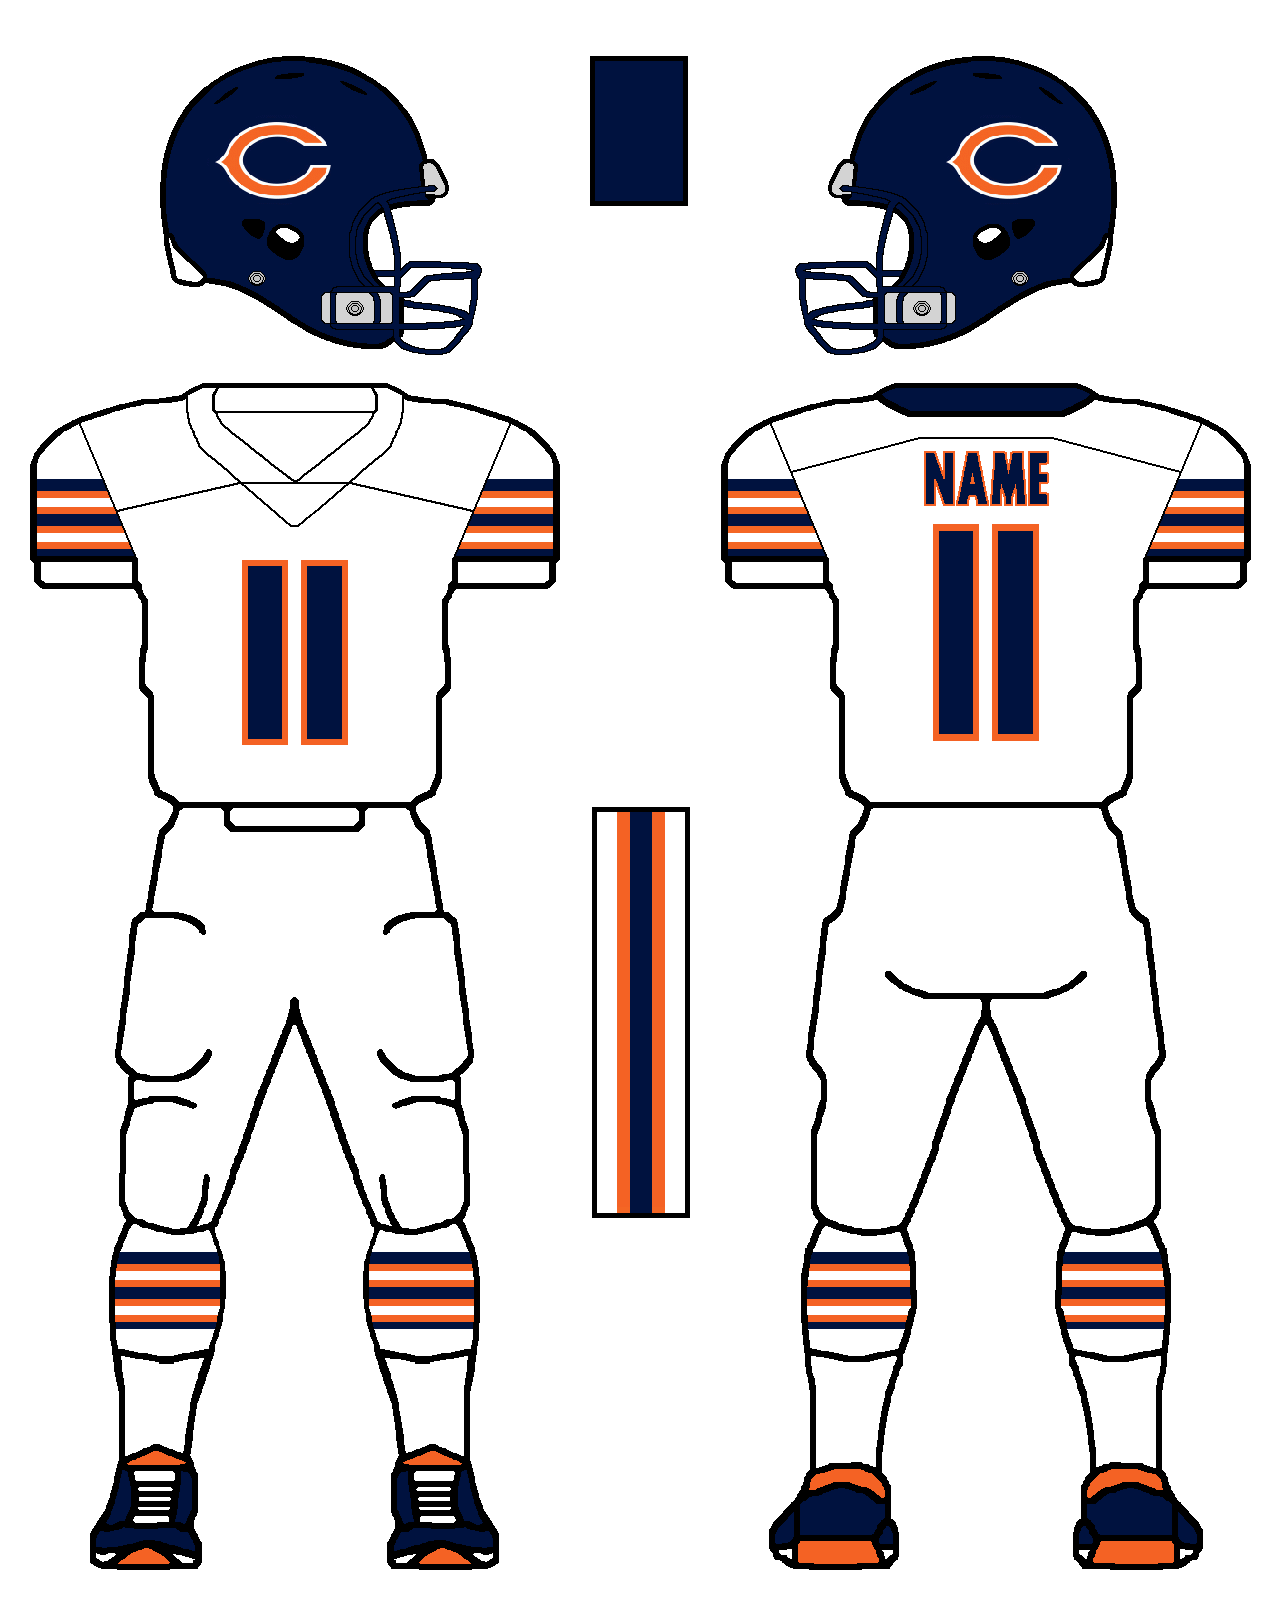 BEARS_ALTERNATE_2.png